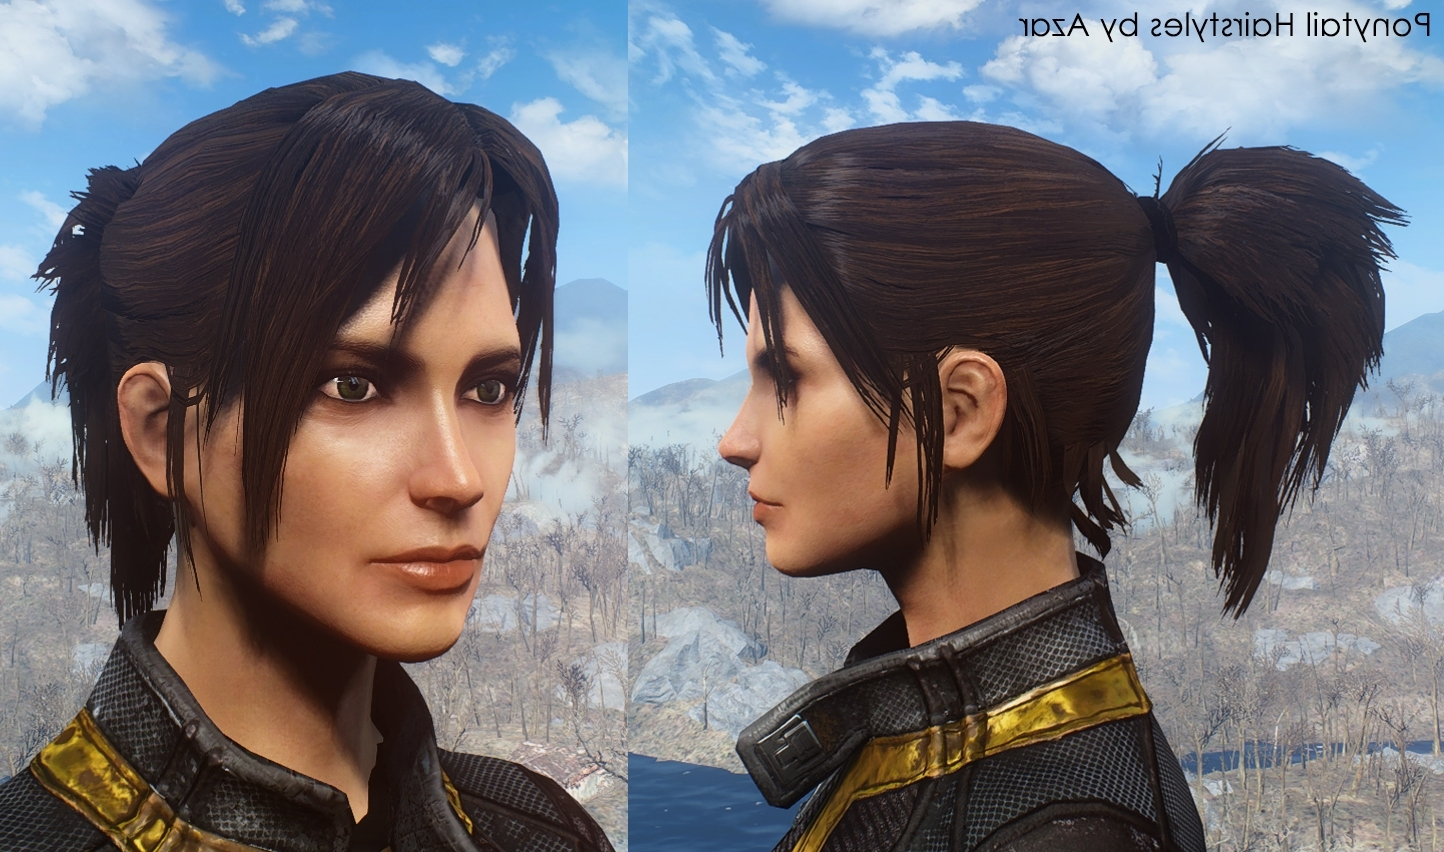 Ponytail Hairstylesazar Fo4 Mod Download In Current Mod Ponytail Hairstyles (View 12 of 20)